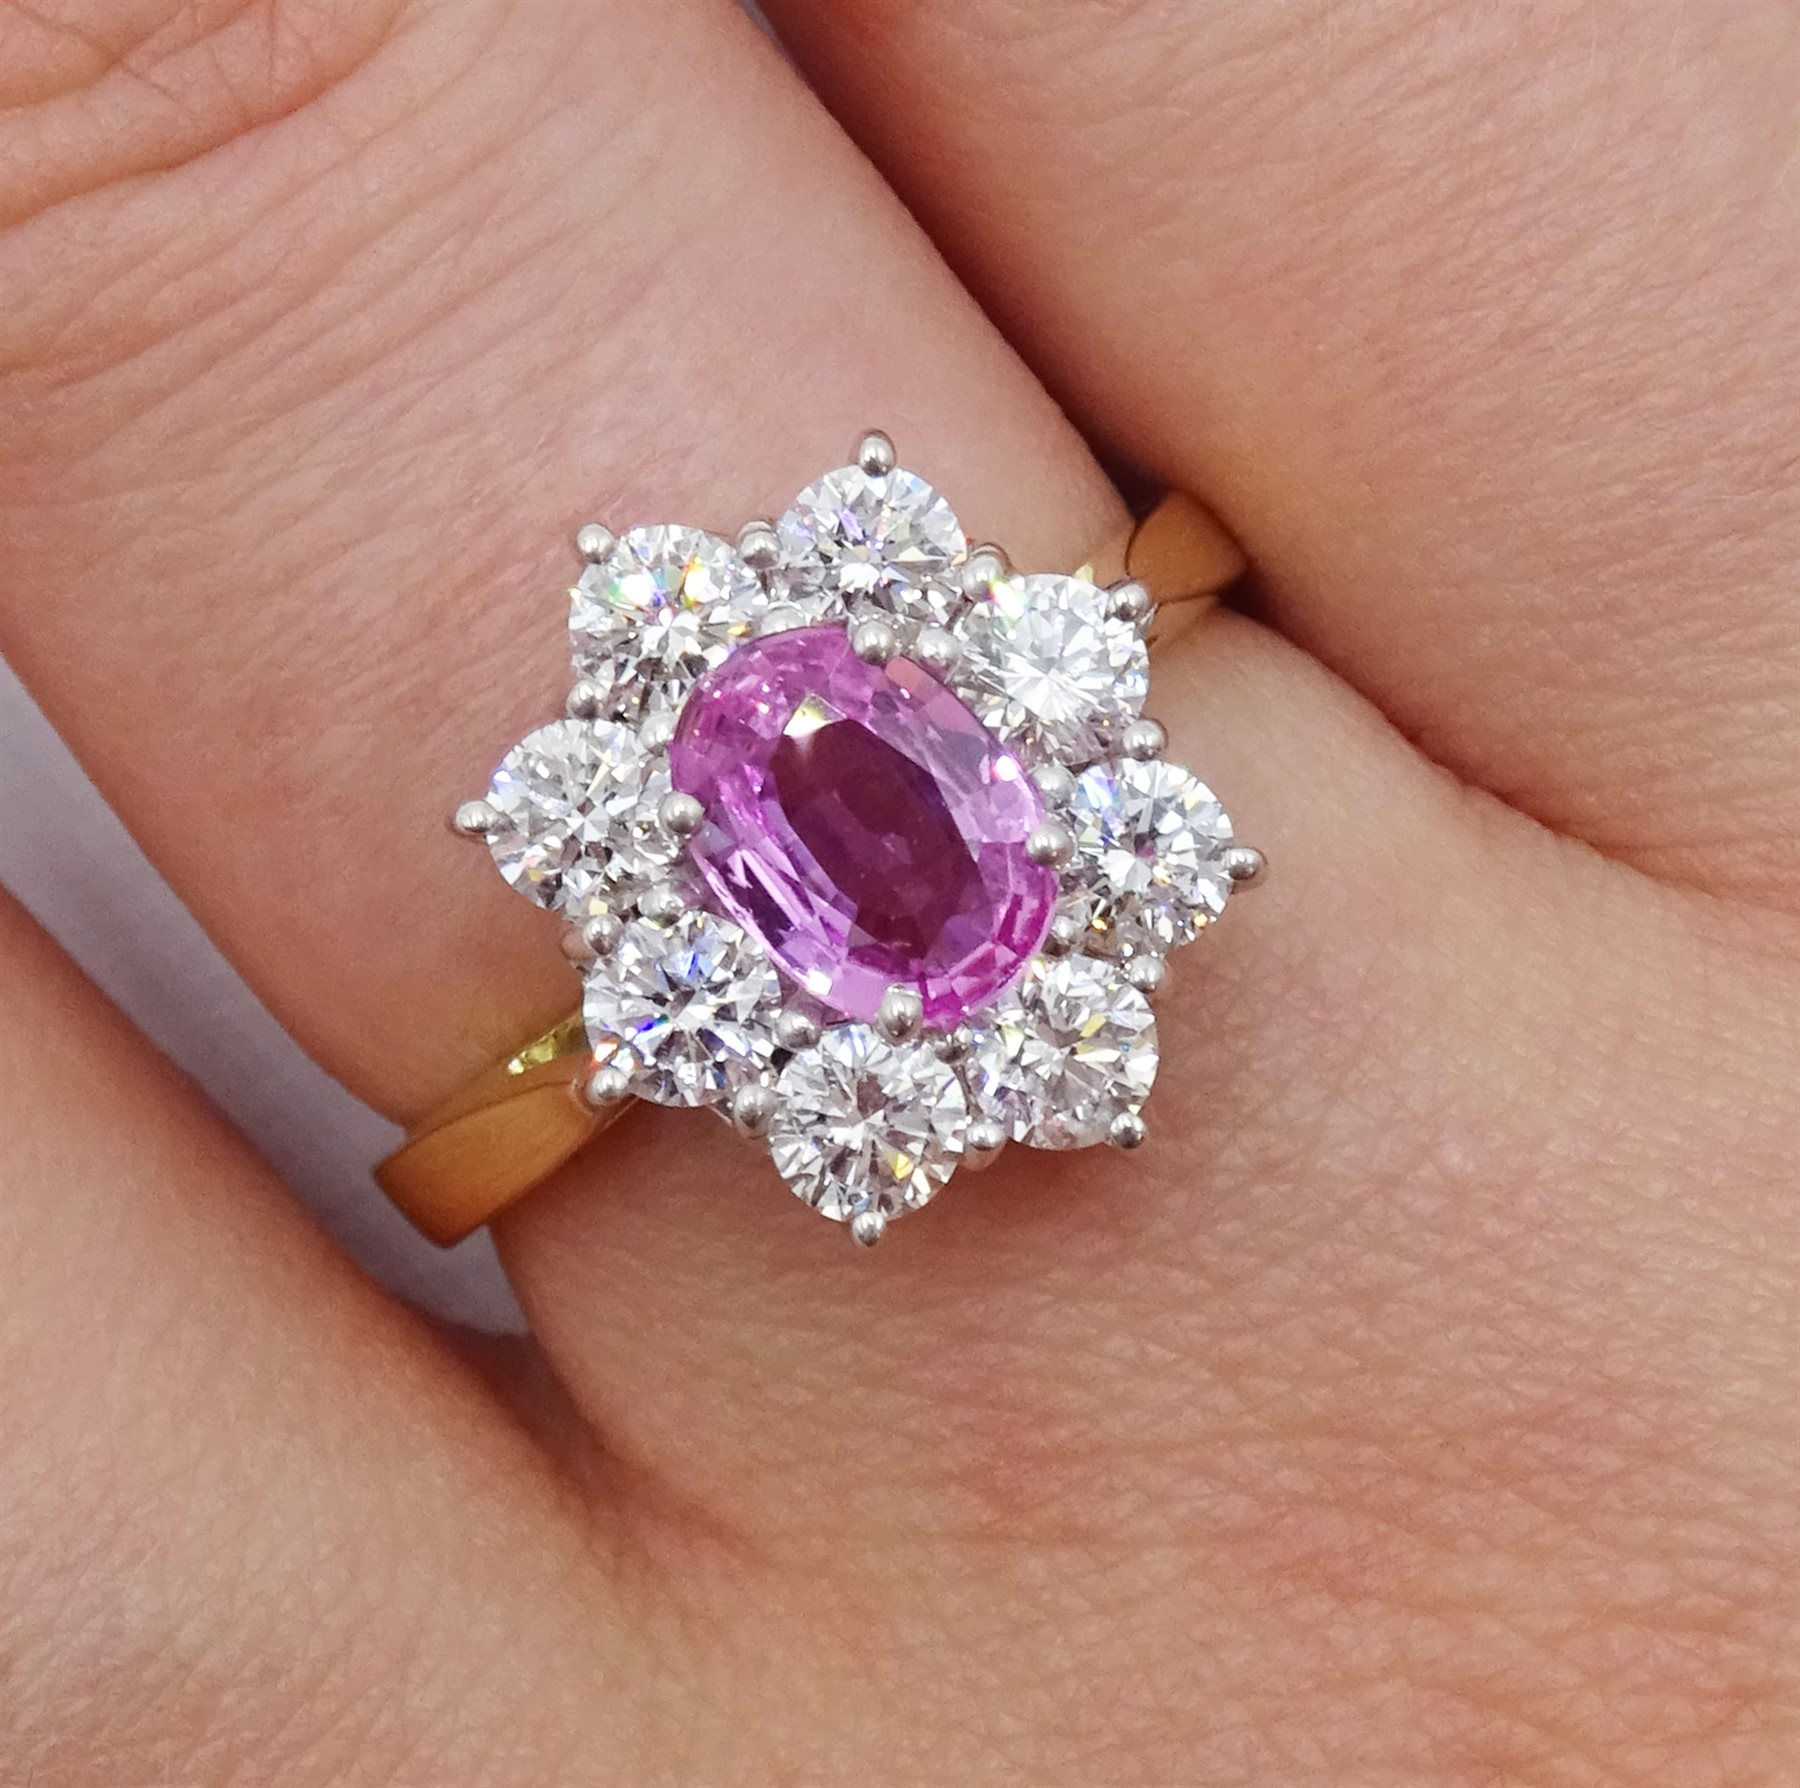 18ct gold pink sapphire and diamond cluster ring - Image 2 of 6